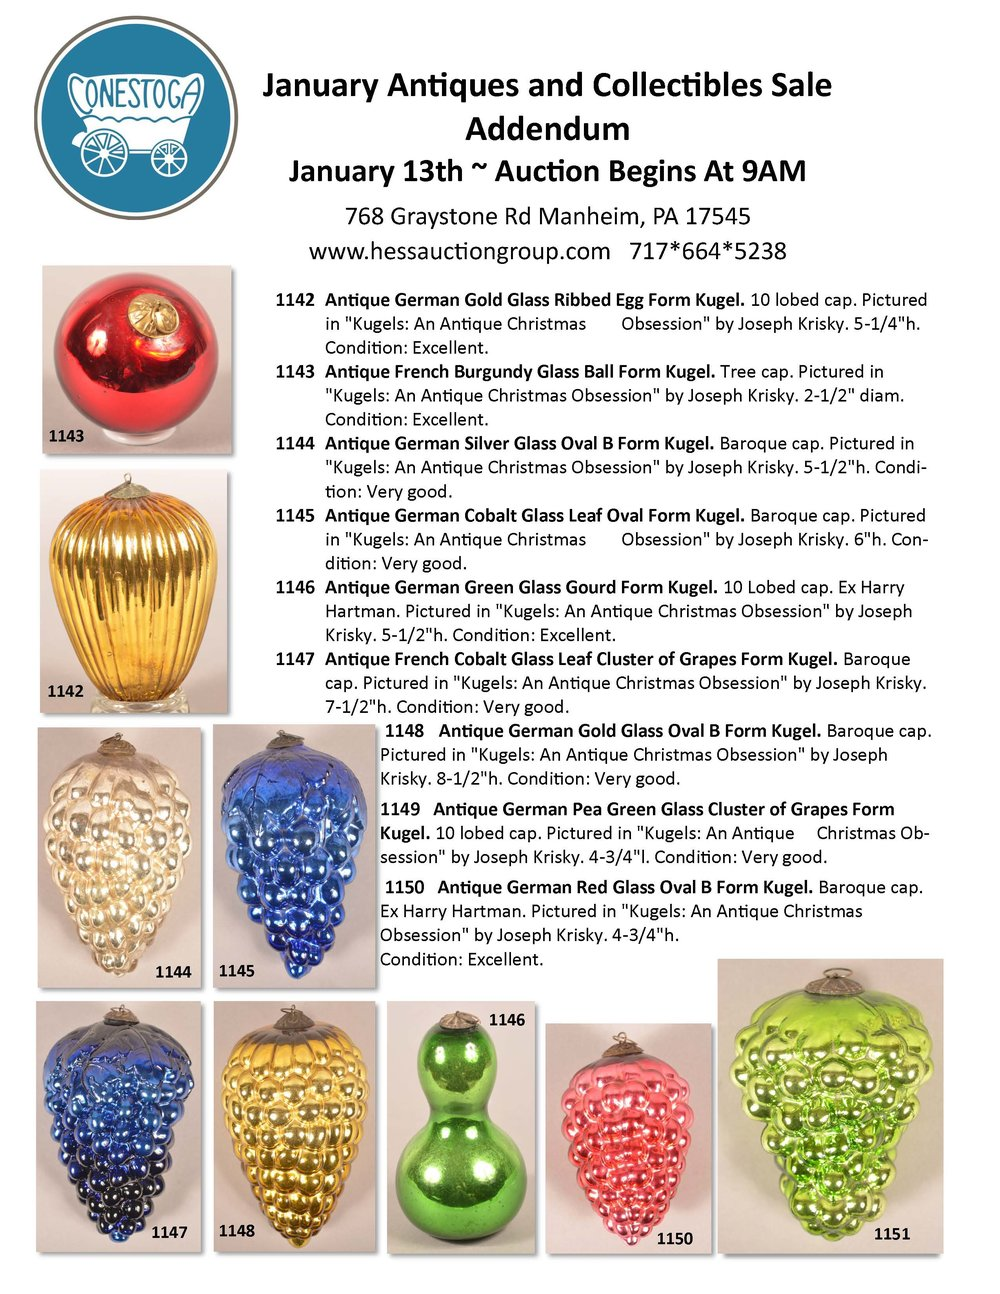 antique kugel Christmas ornaments for sale at auction, Conestoga Auctions, Manheim, PA January 13, 2018